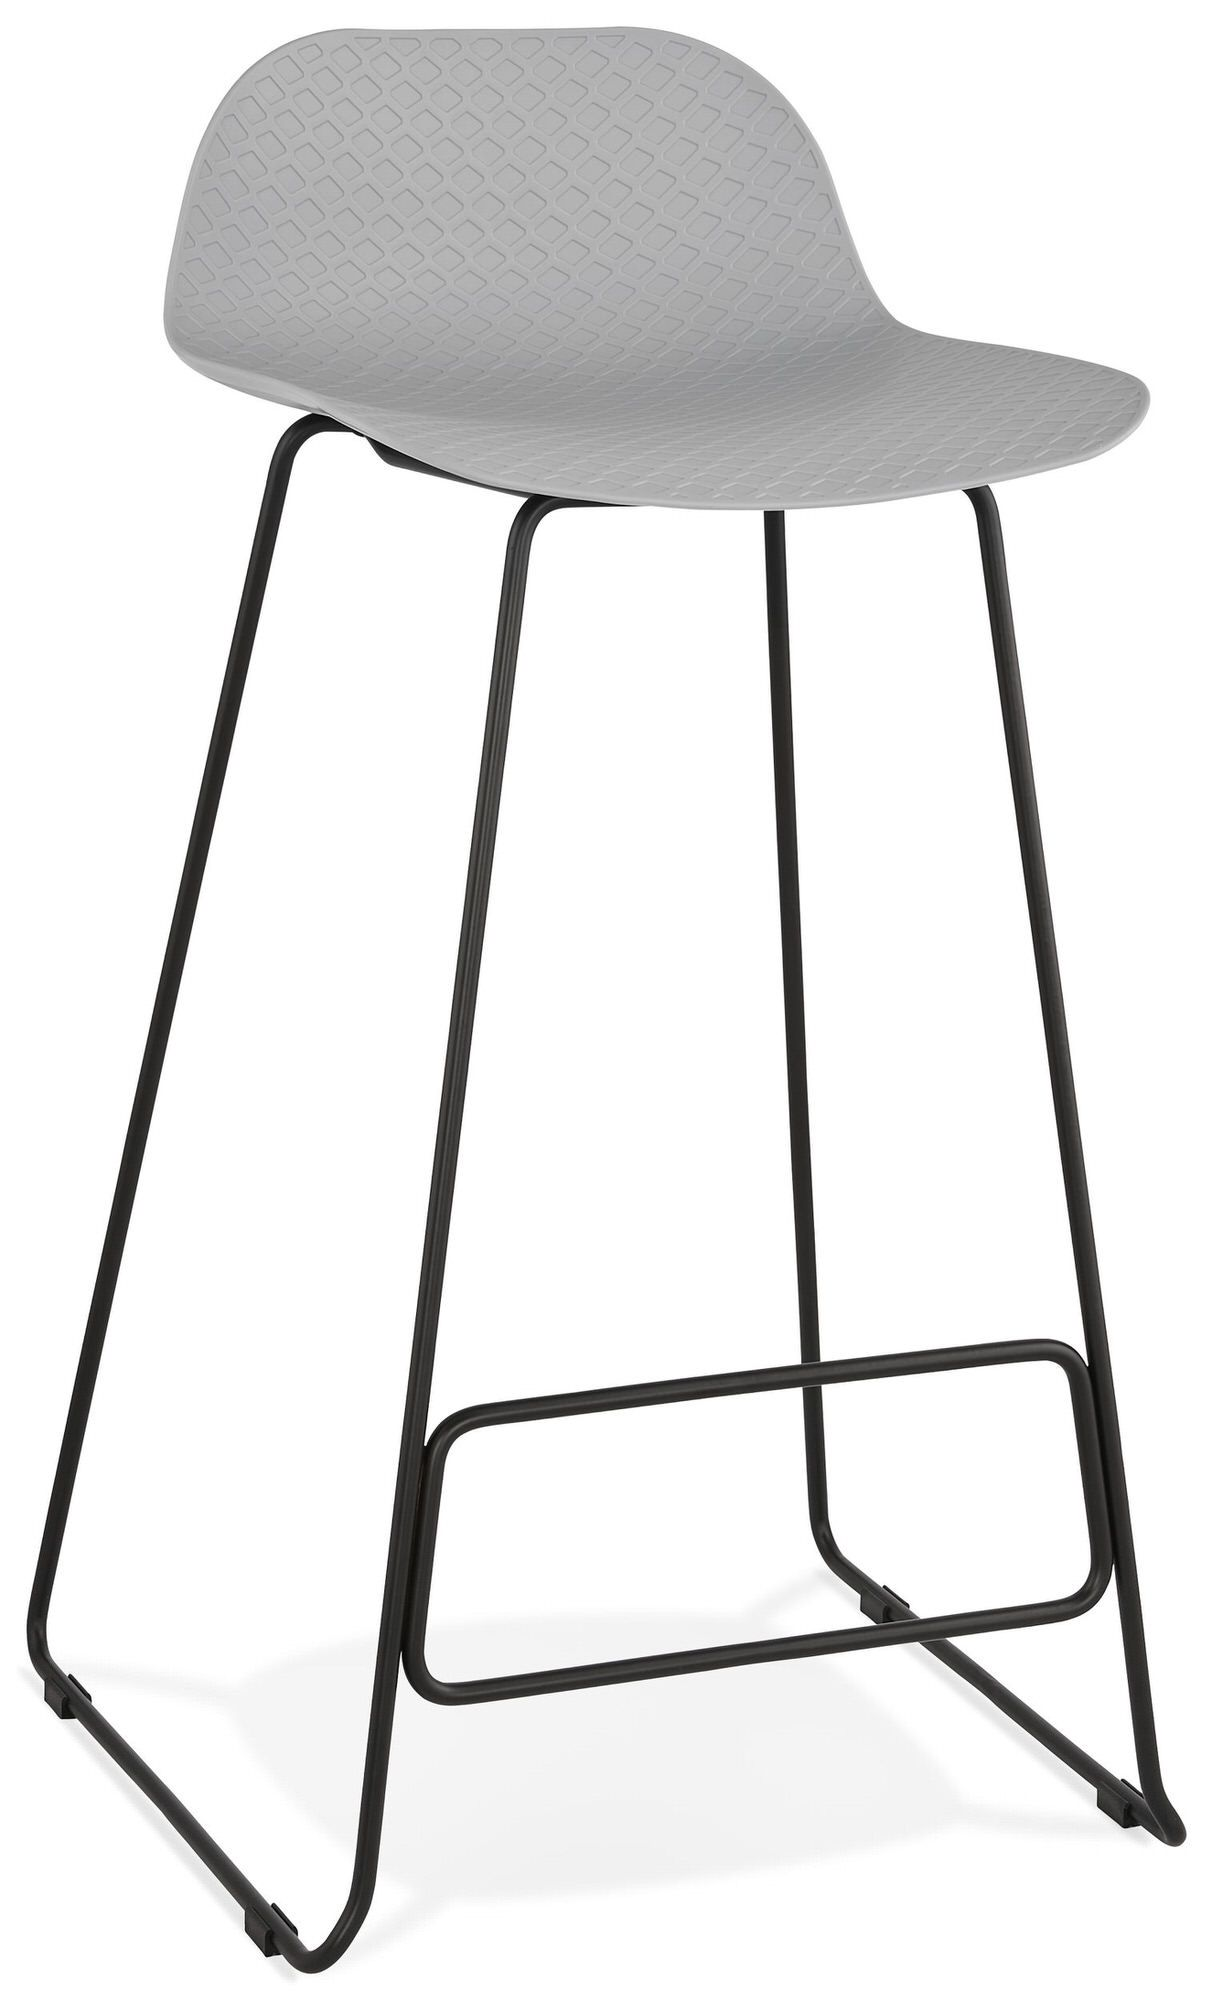 Tabouret De Bar Design Slade Black Kokoon Design Gris Tabouret De Bar Tabouret De Bar Design Chaise De Bar Industriel